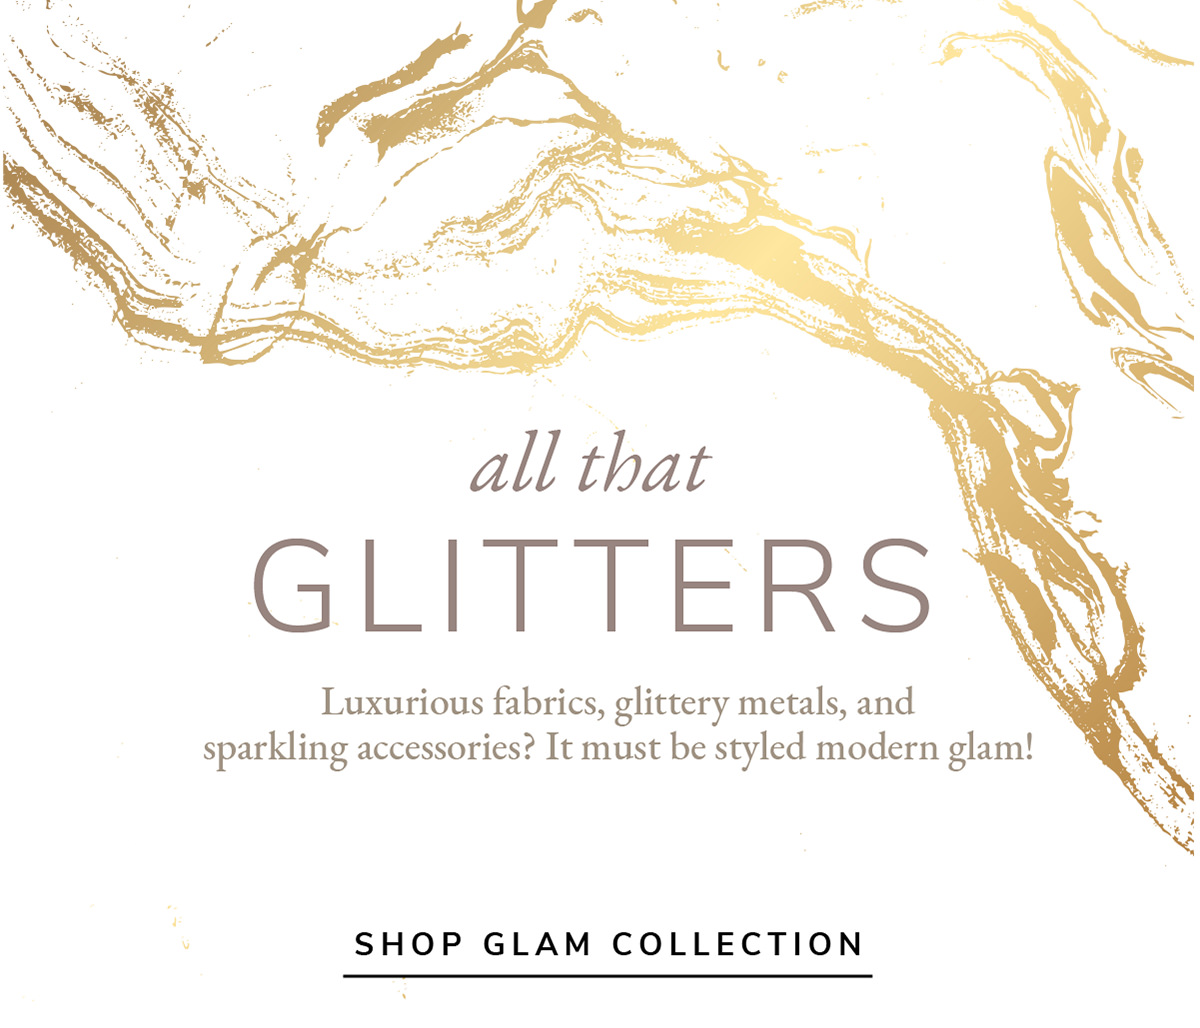 All that GLITTERS. Luxurious fabrics, glittery metals, and sparkling accesories? it mus be styled modern glam!   SHOP GLAM COLLECTION